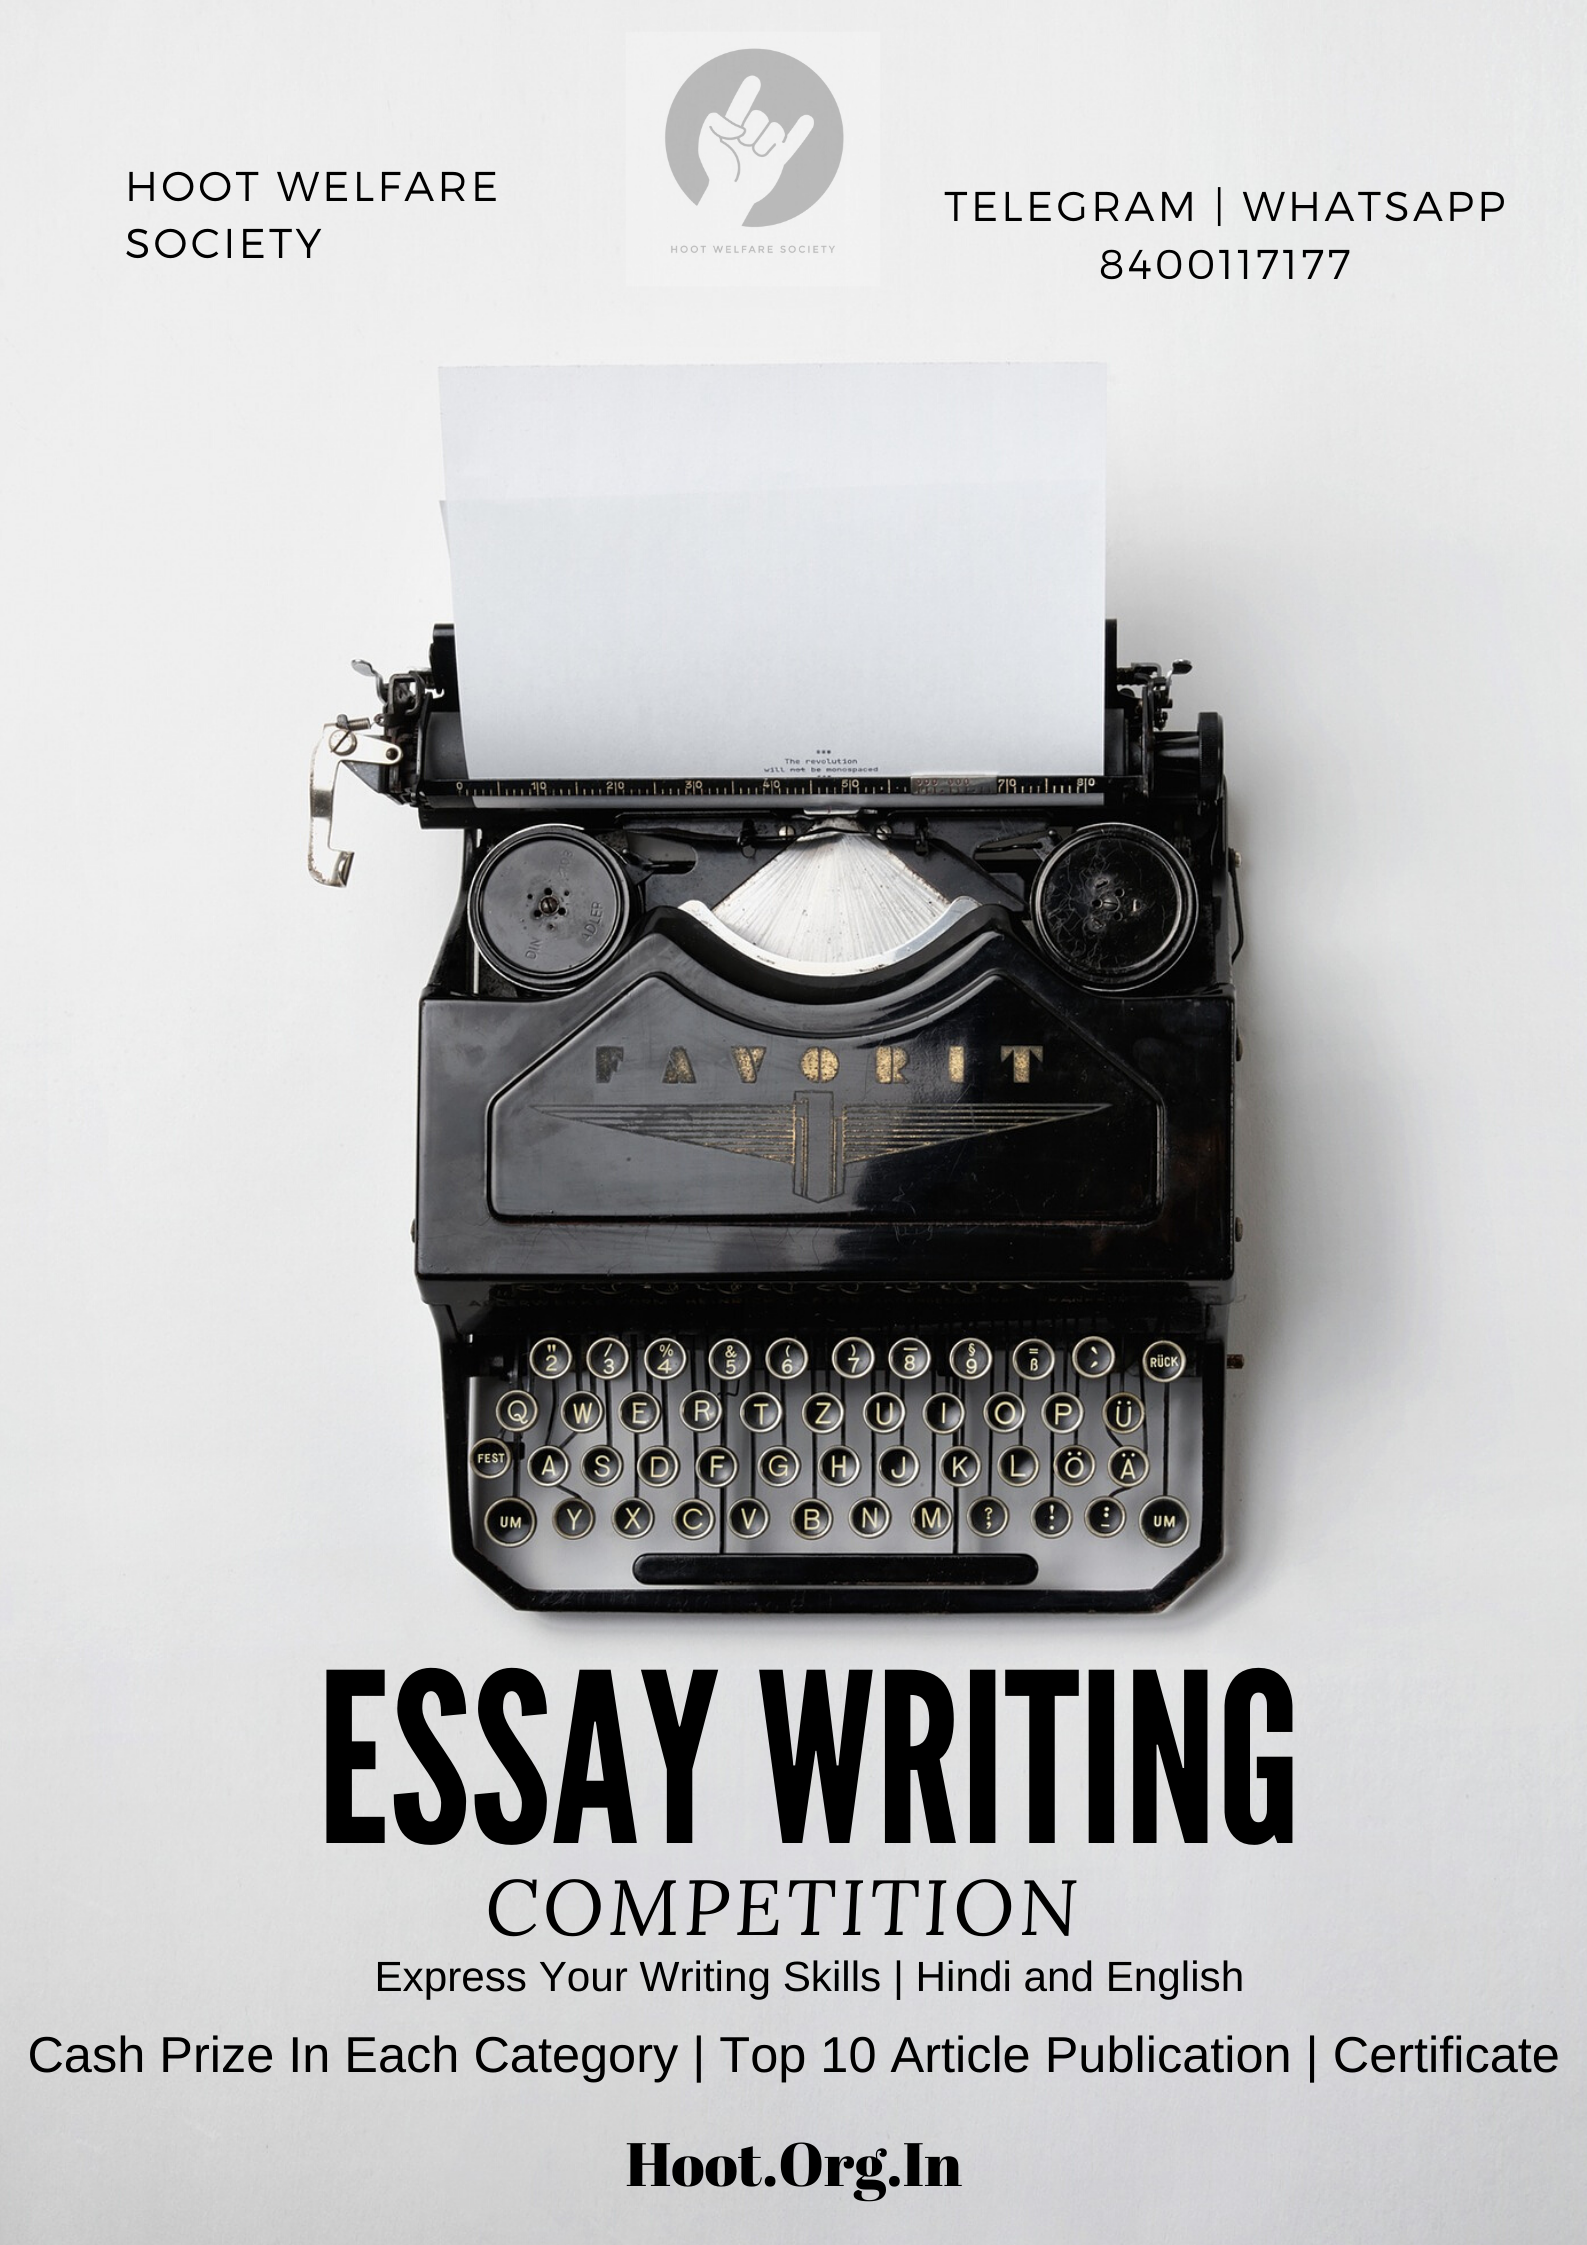 Essay Writing Competition by Hoot Welfare Society